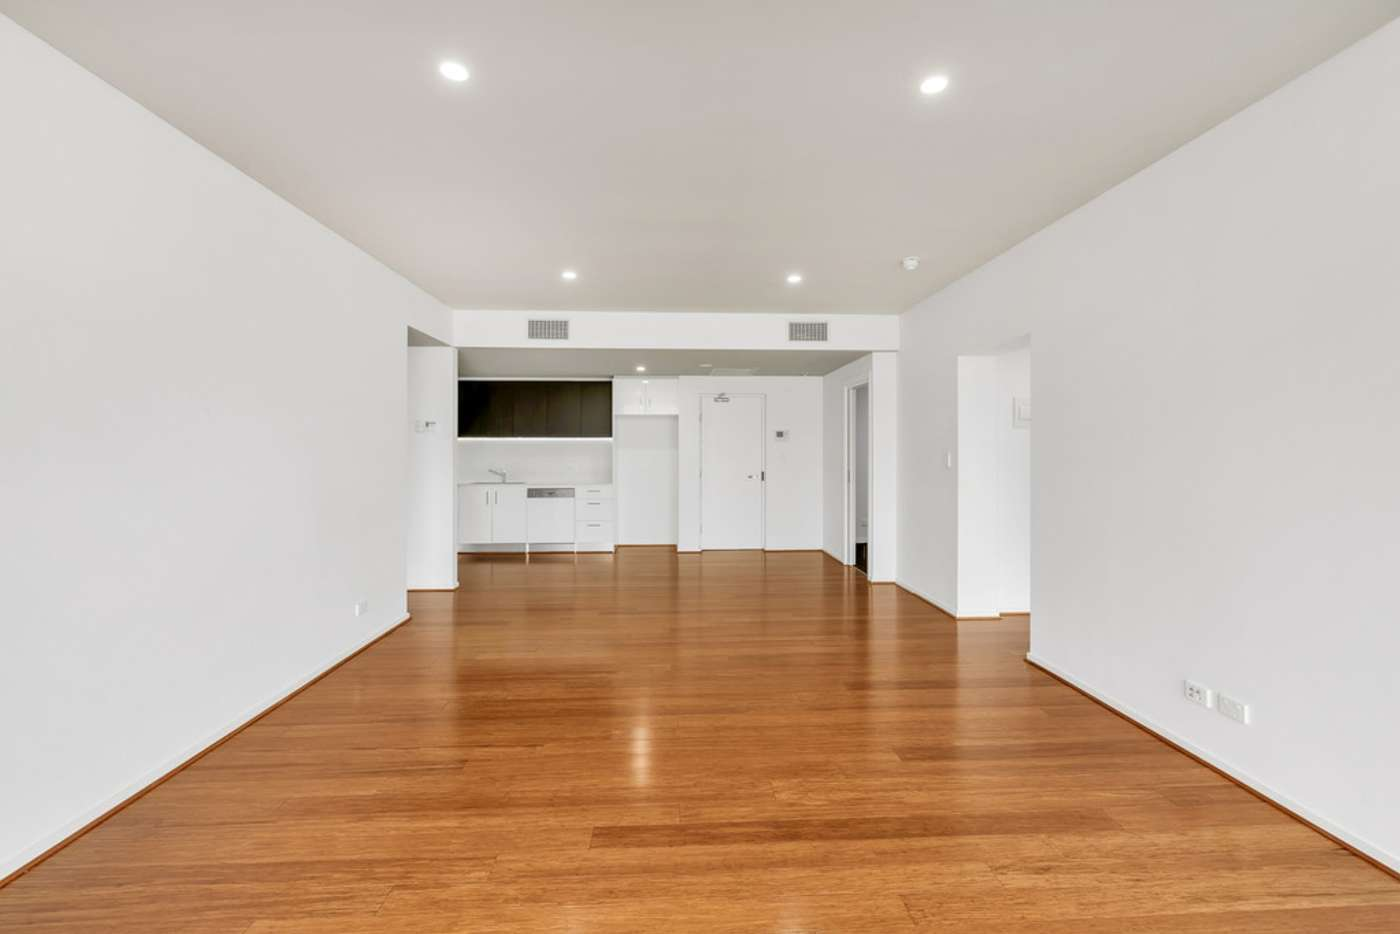 Fifth view of Homely apartment listing, 102/112 South Terrace, Adelaide SA 5000